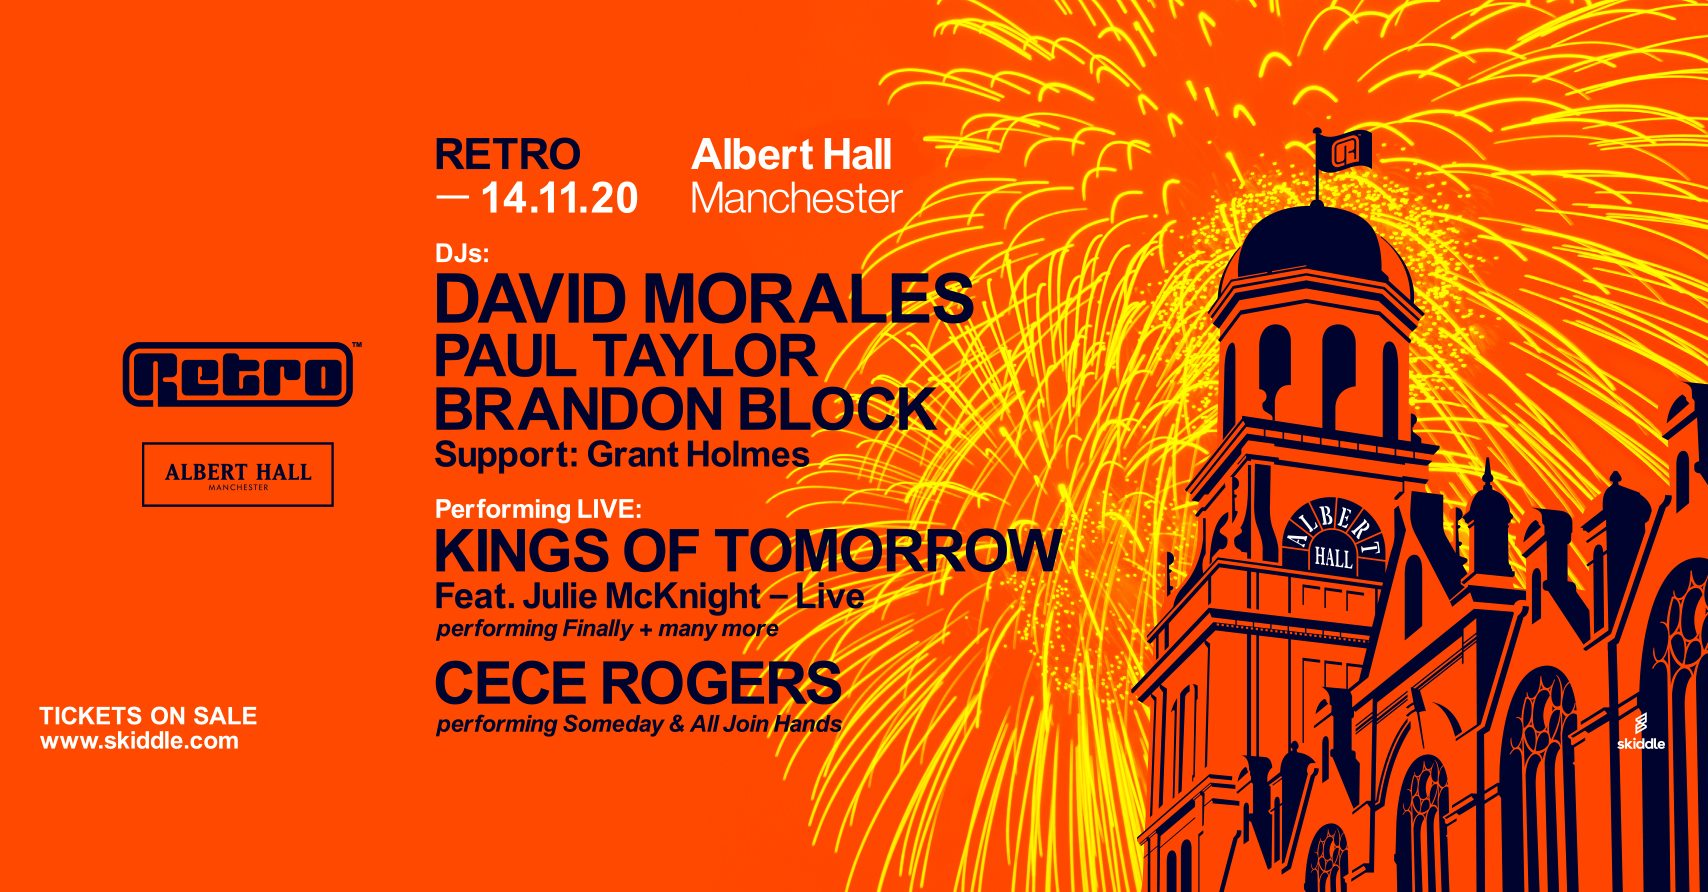 Retro at Albert Hall